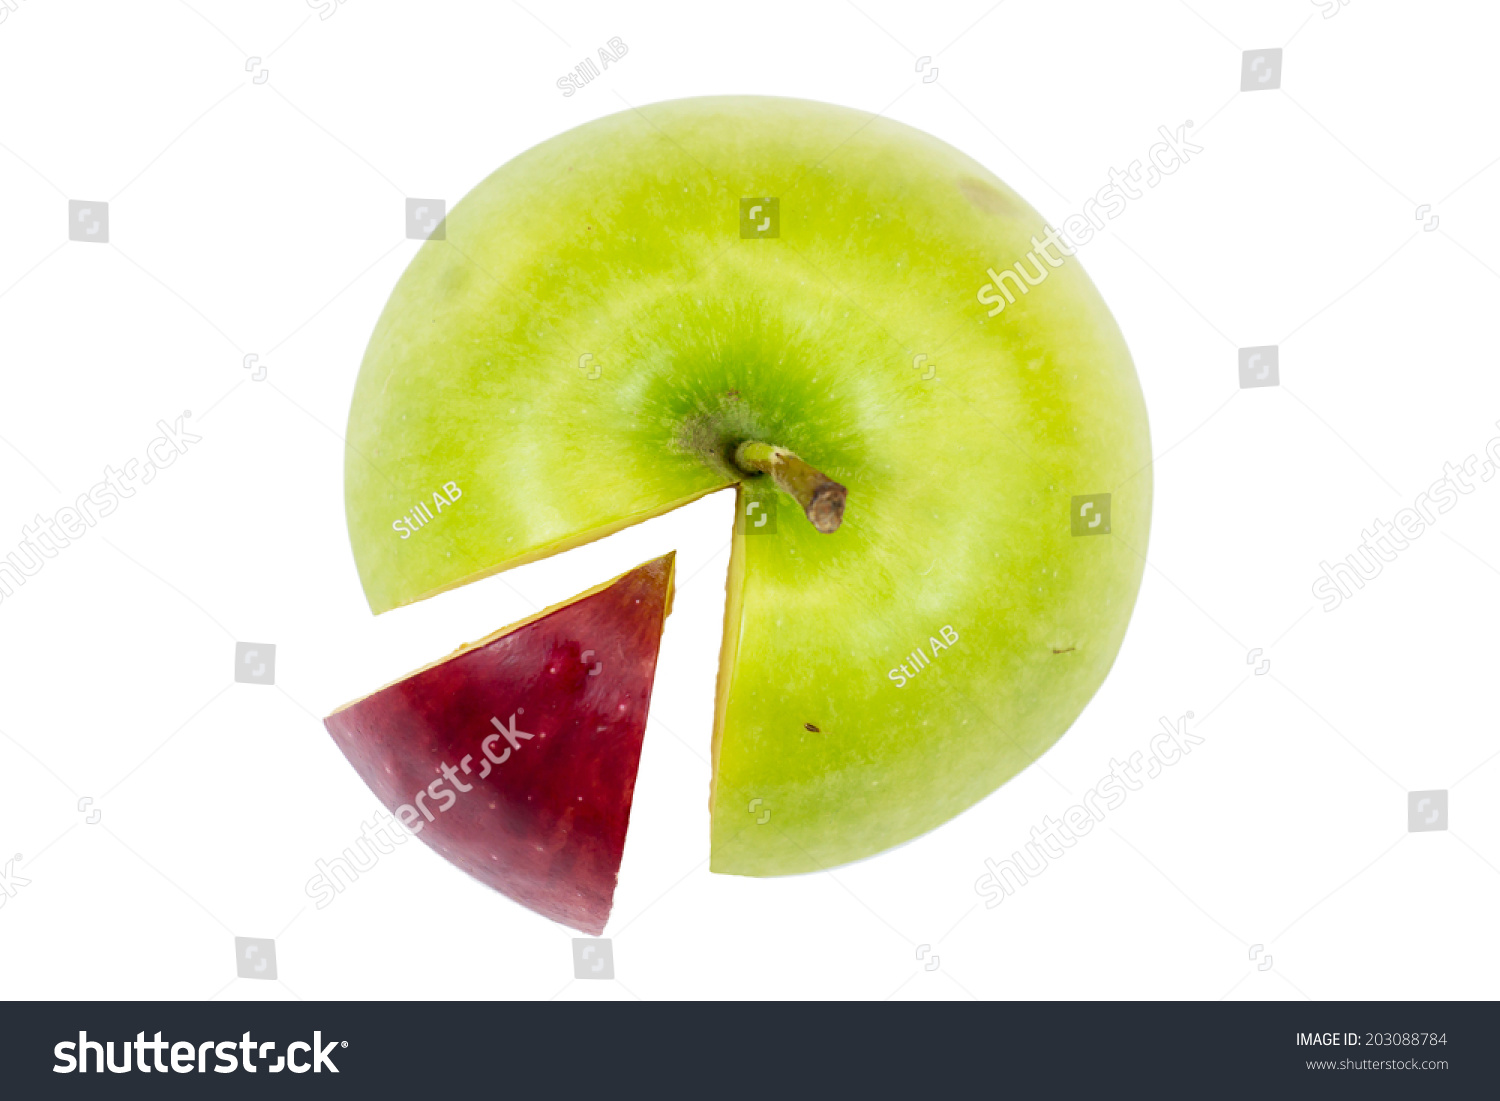 Apple pie chart isolated on white stock photo 203088784 shutterstock apple pie chart isolated on white background business concept nvjuhfo Images